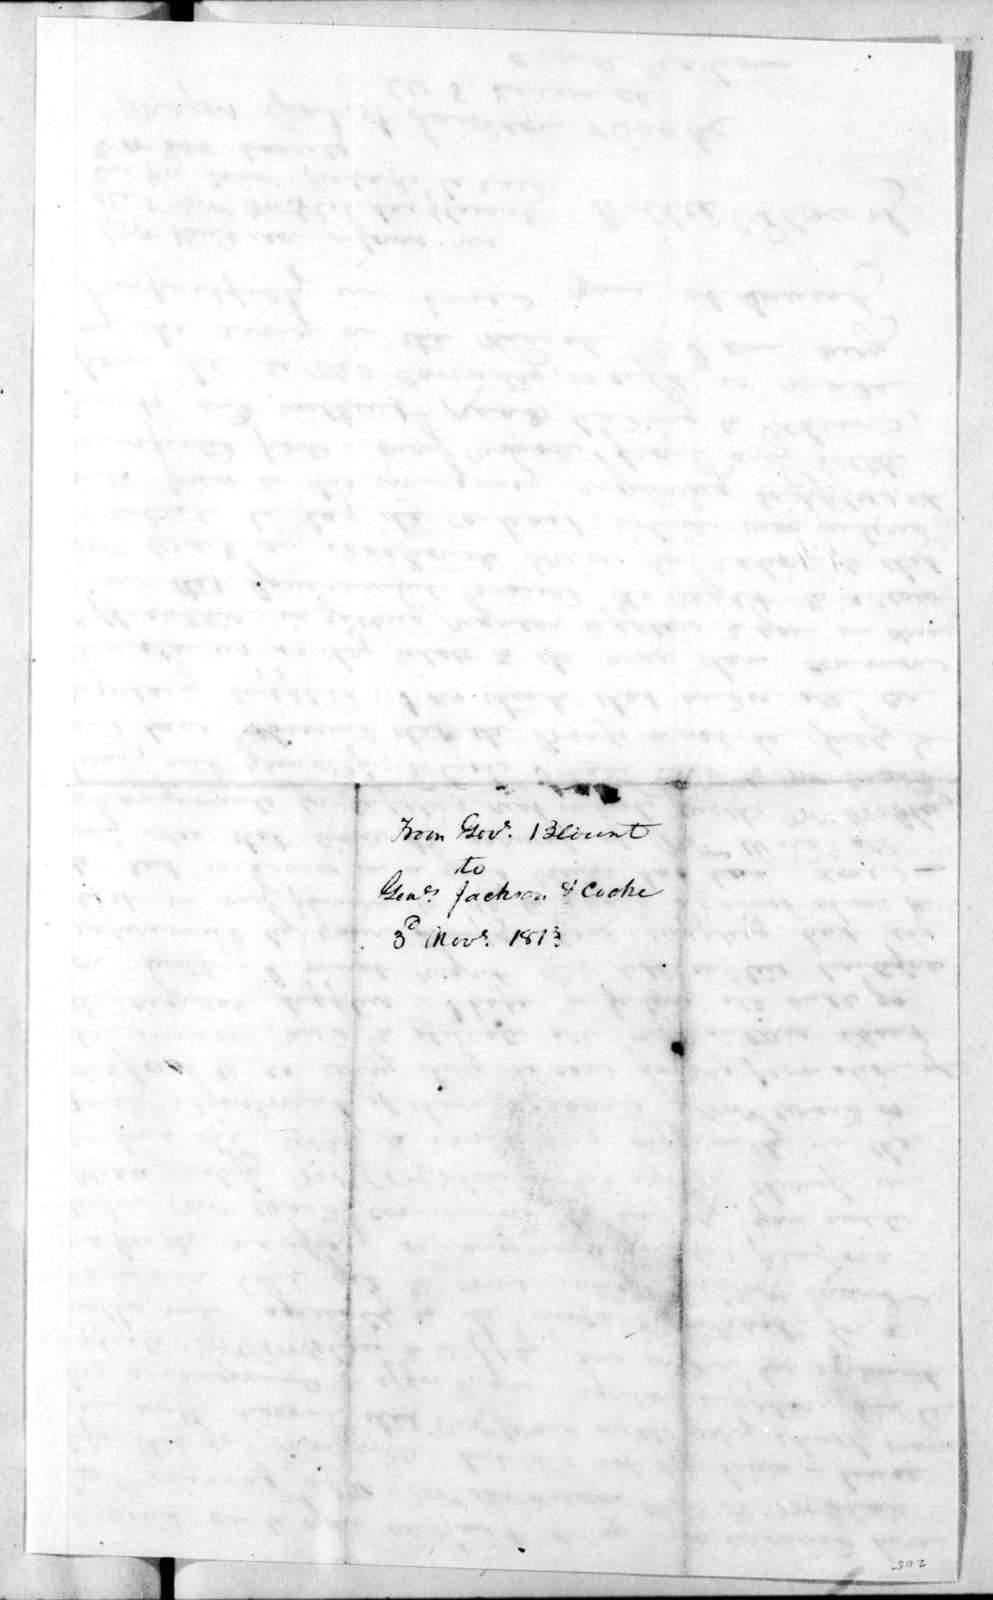 Willie Blount to Andrew Jackson, November 3, 1813